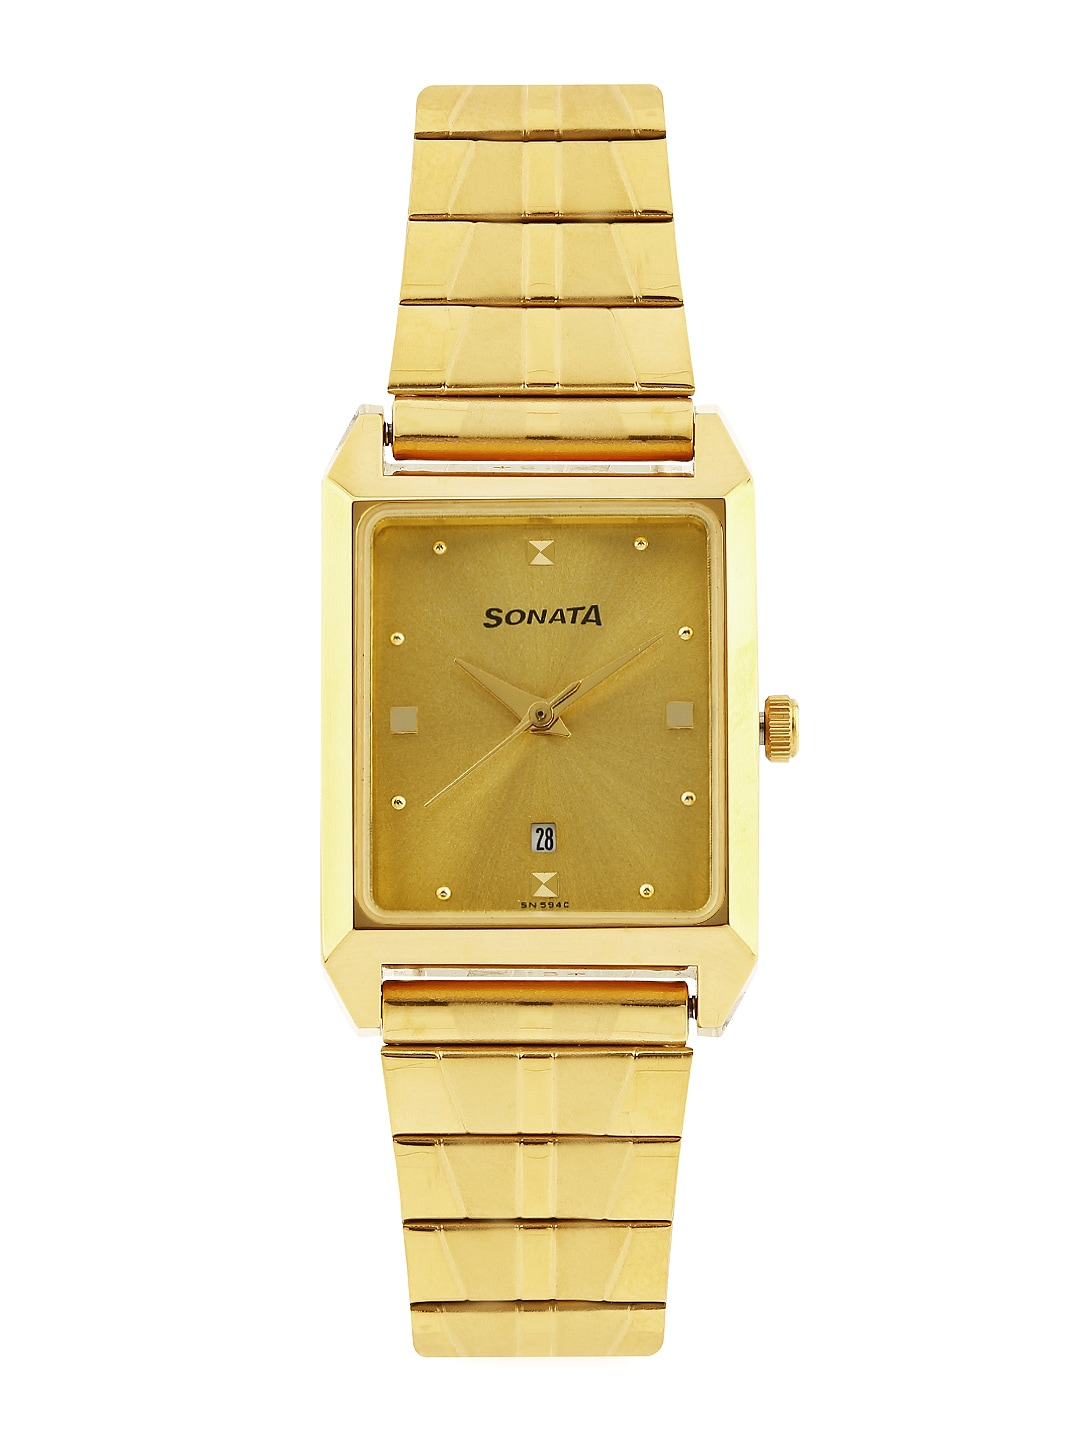 Sonata Men Gold-Toned Dial Watch NF7007YM02A